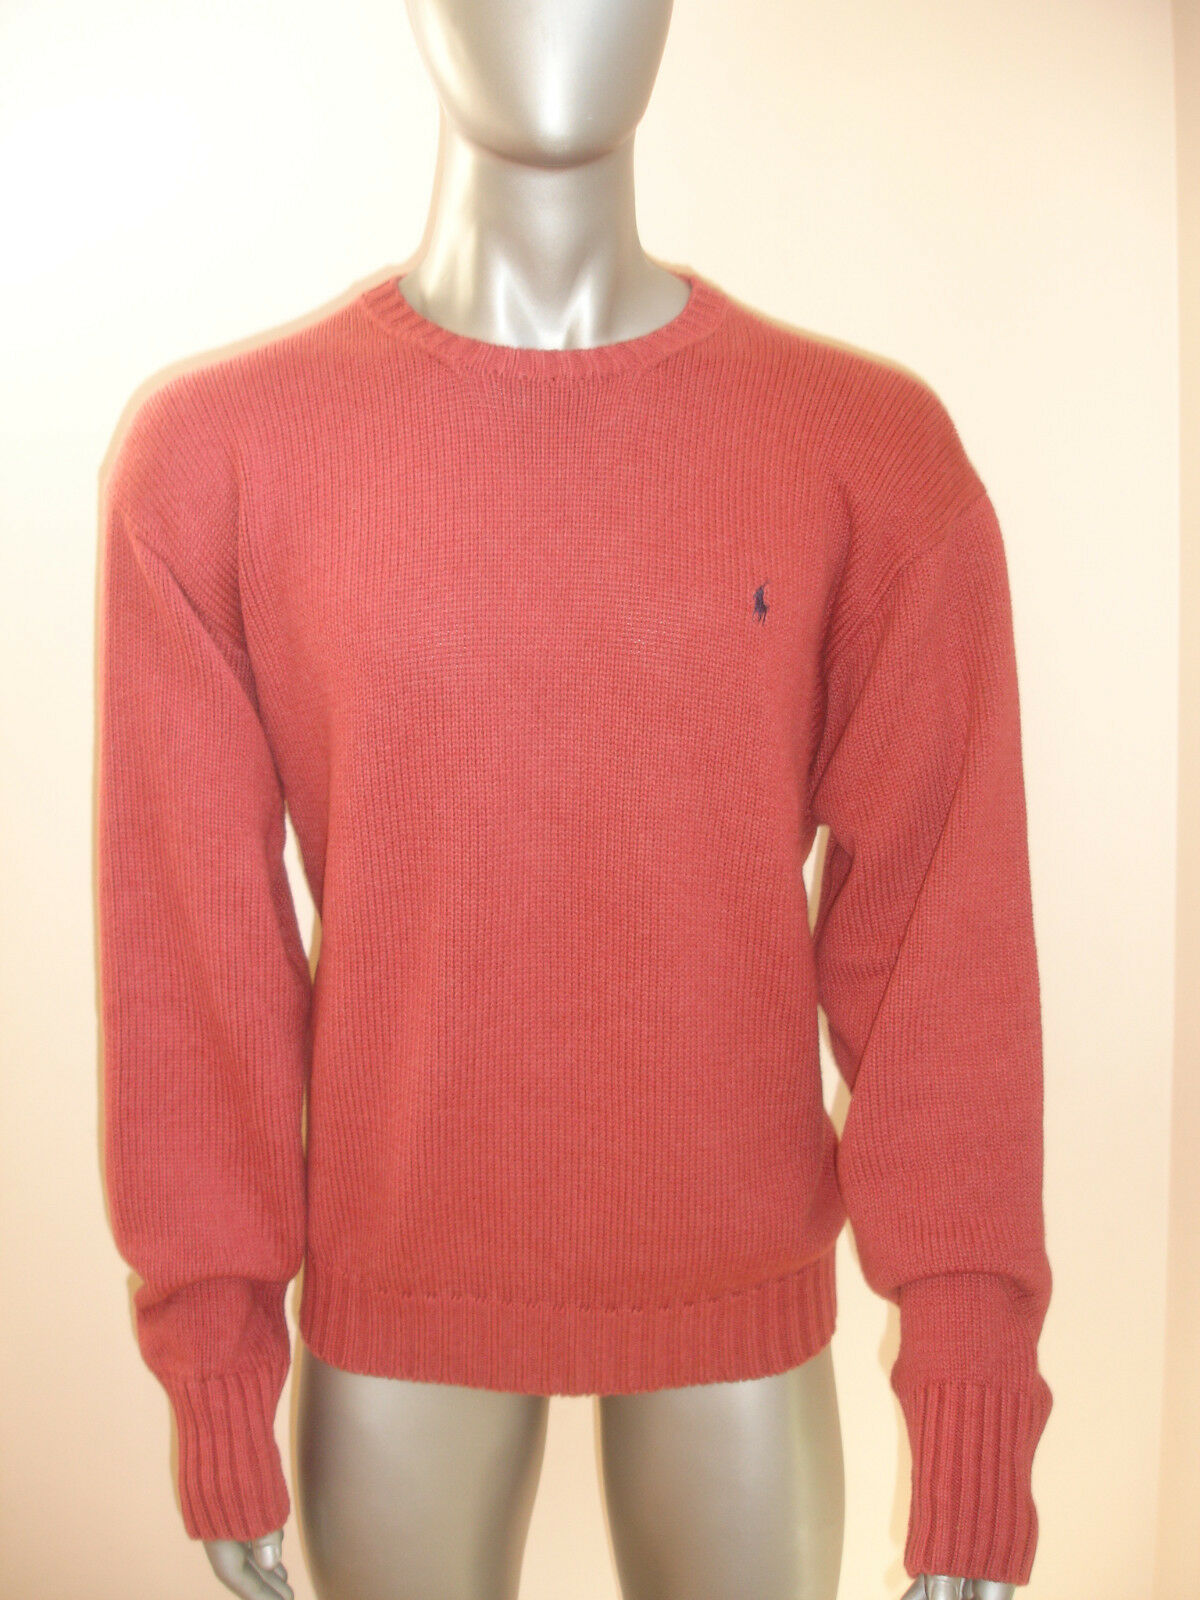 POLO RALPH LAUREN KNIT SWEATER TOP MENS size XL RED WASHED COTTON